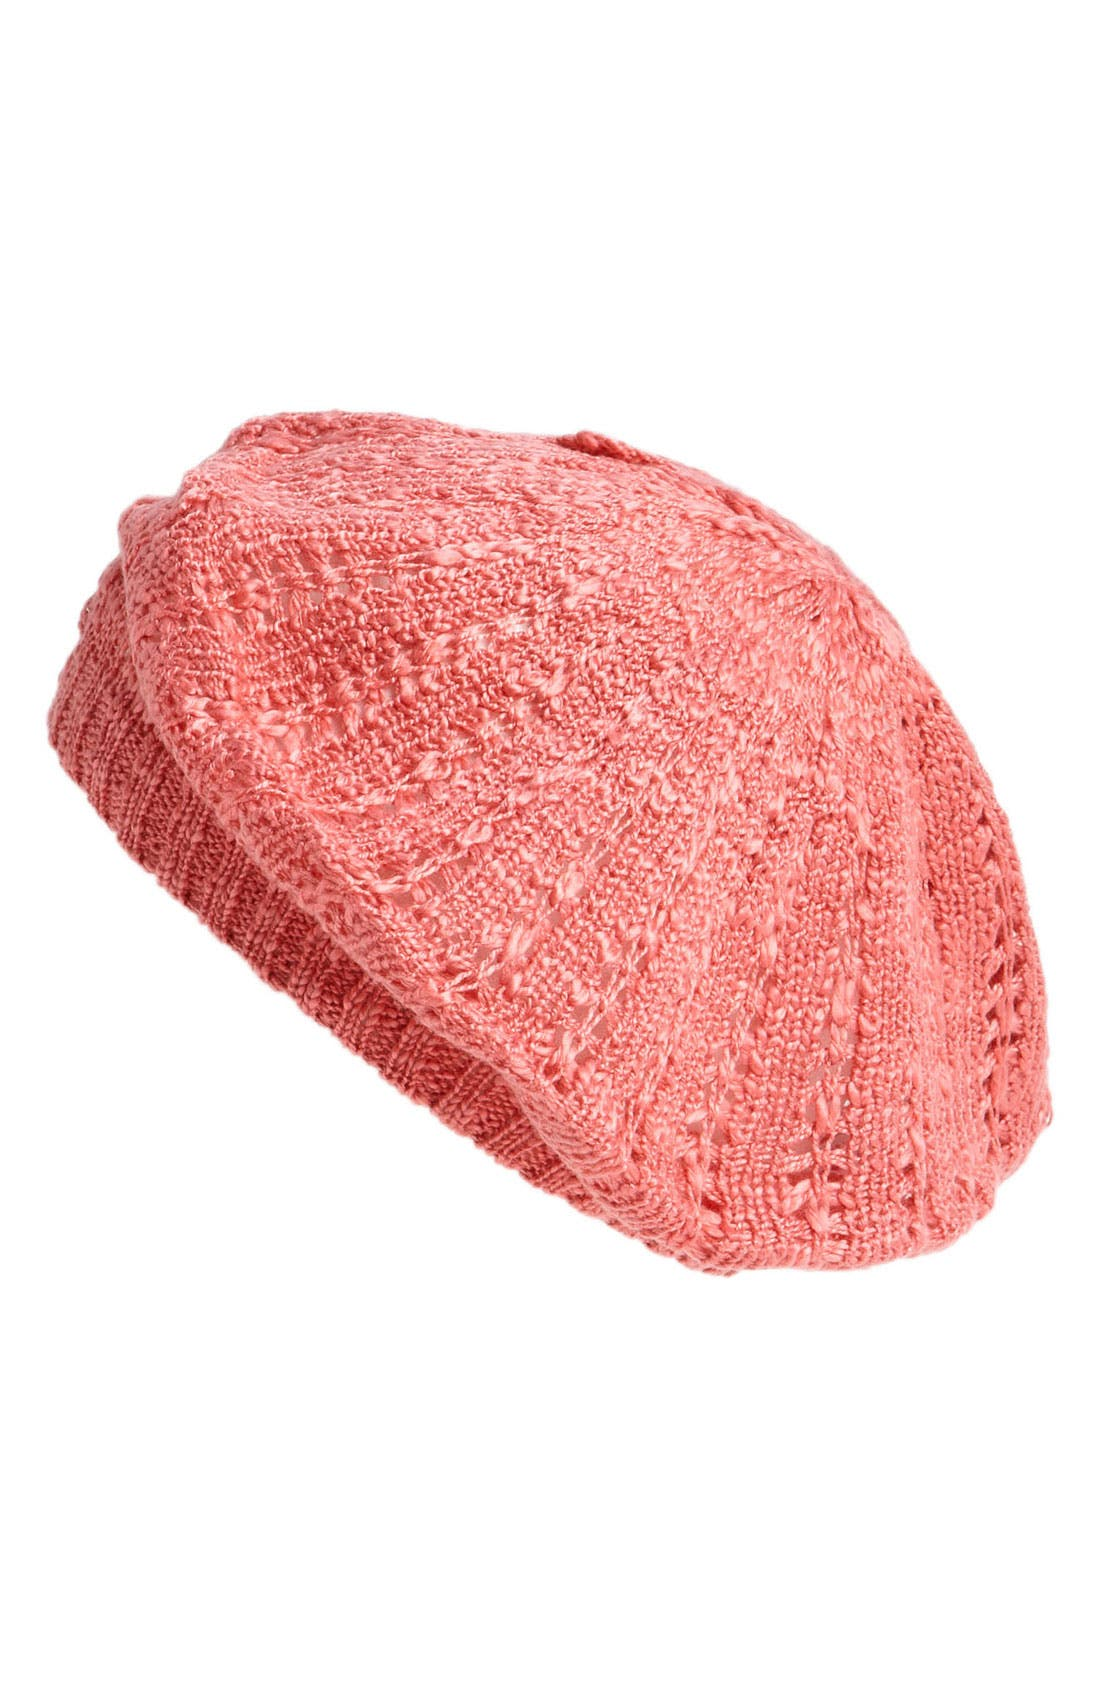 Alternate Image 1 Selected - BP. Featherweight Knit Beret